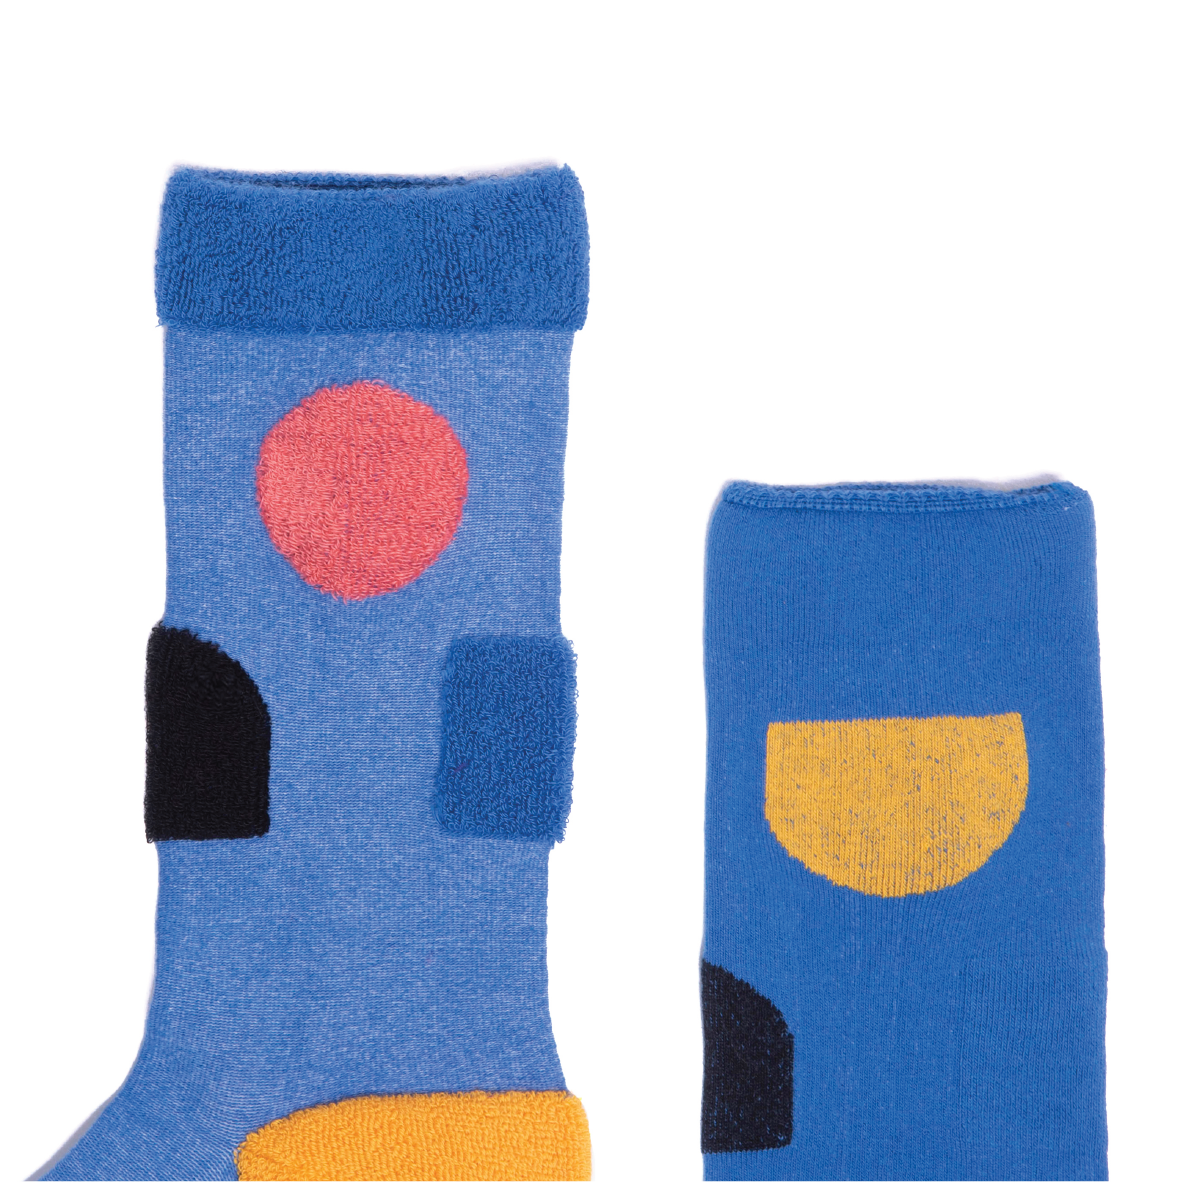 My Inner Beauty - Jiwa Blue Socks